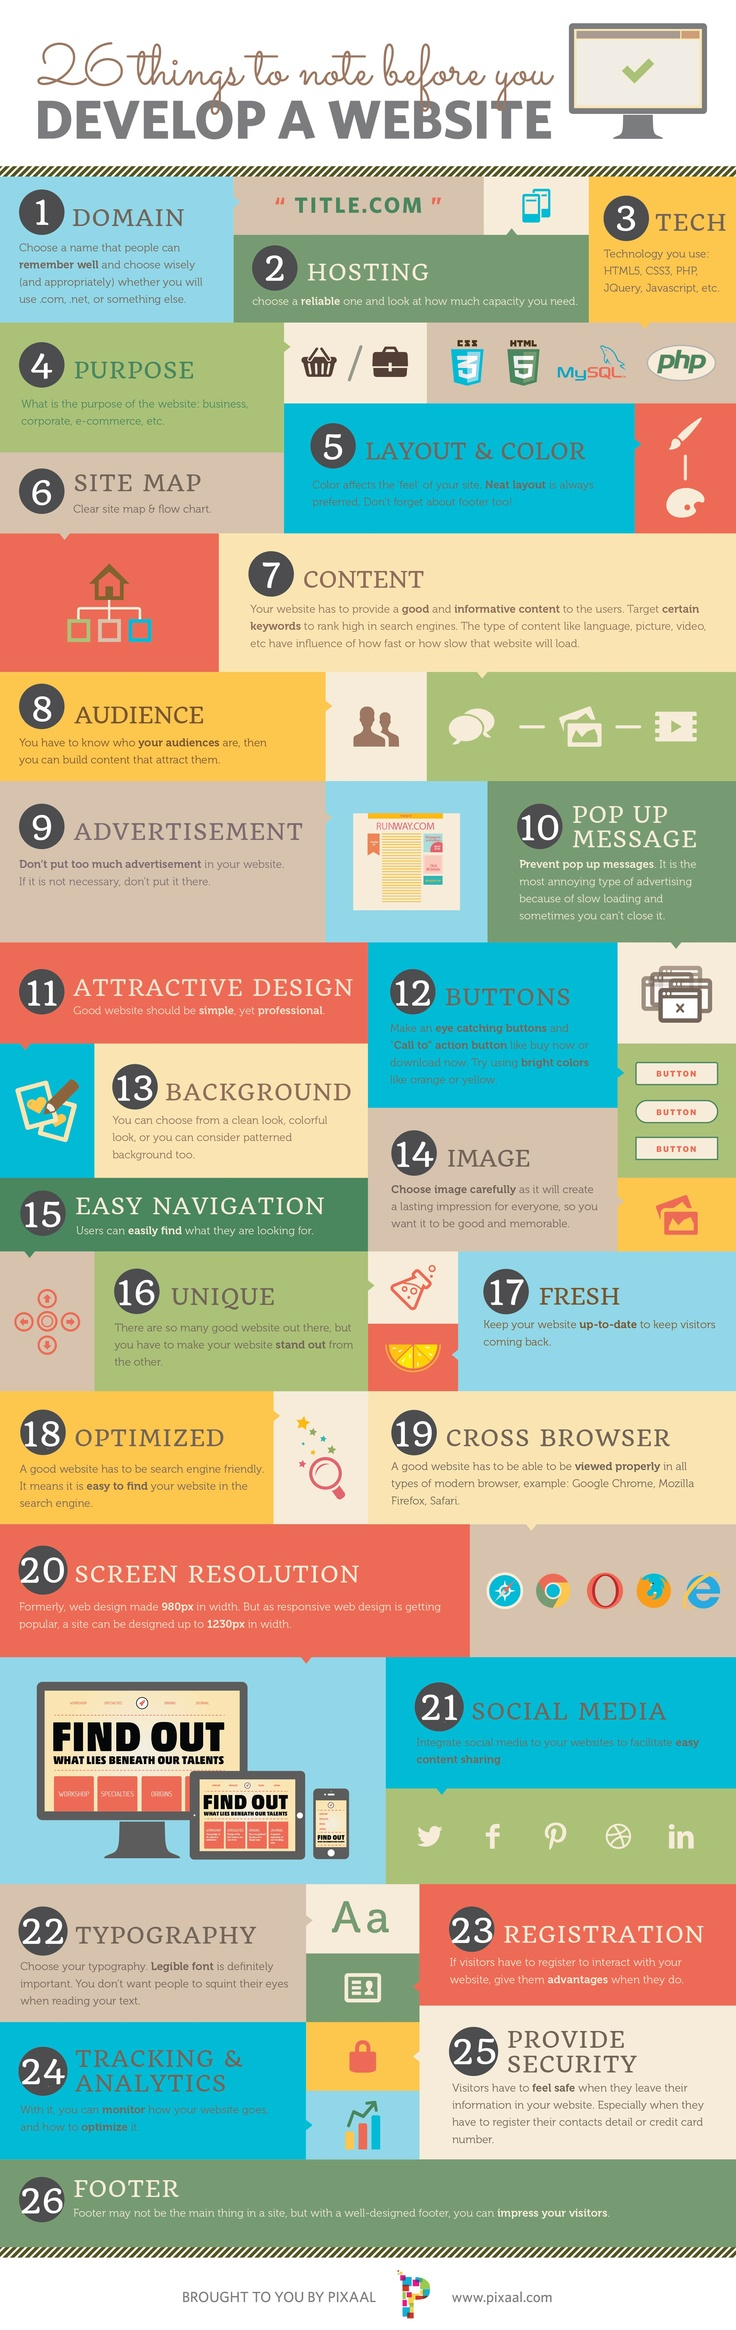 26 things to do before you develop your website